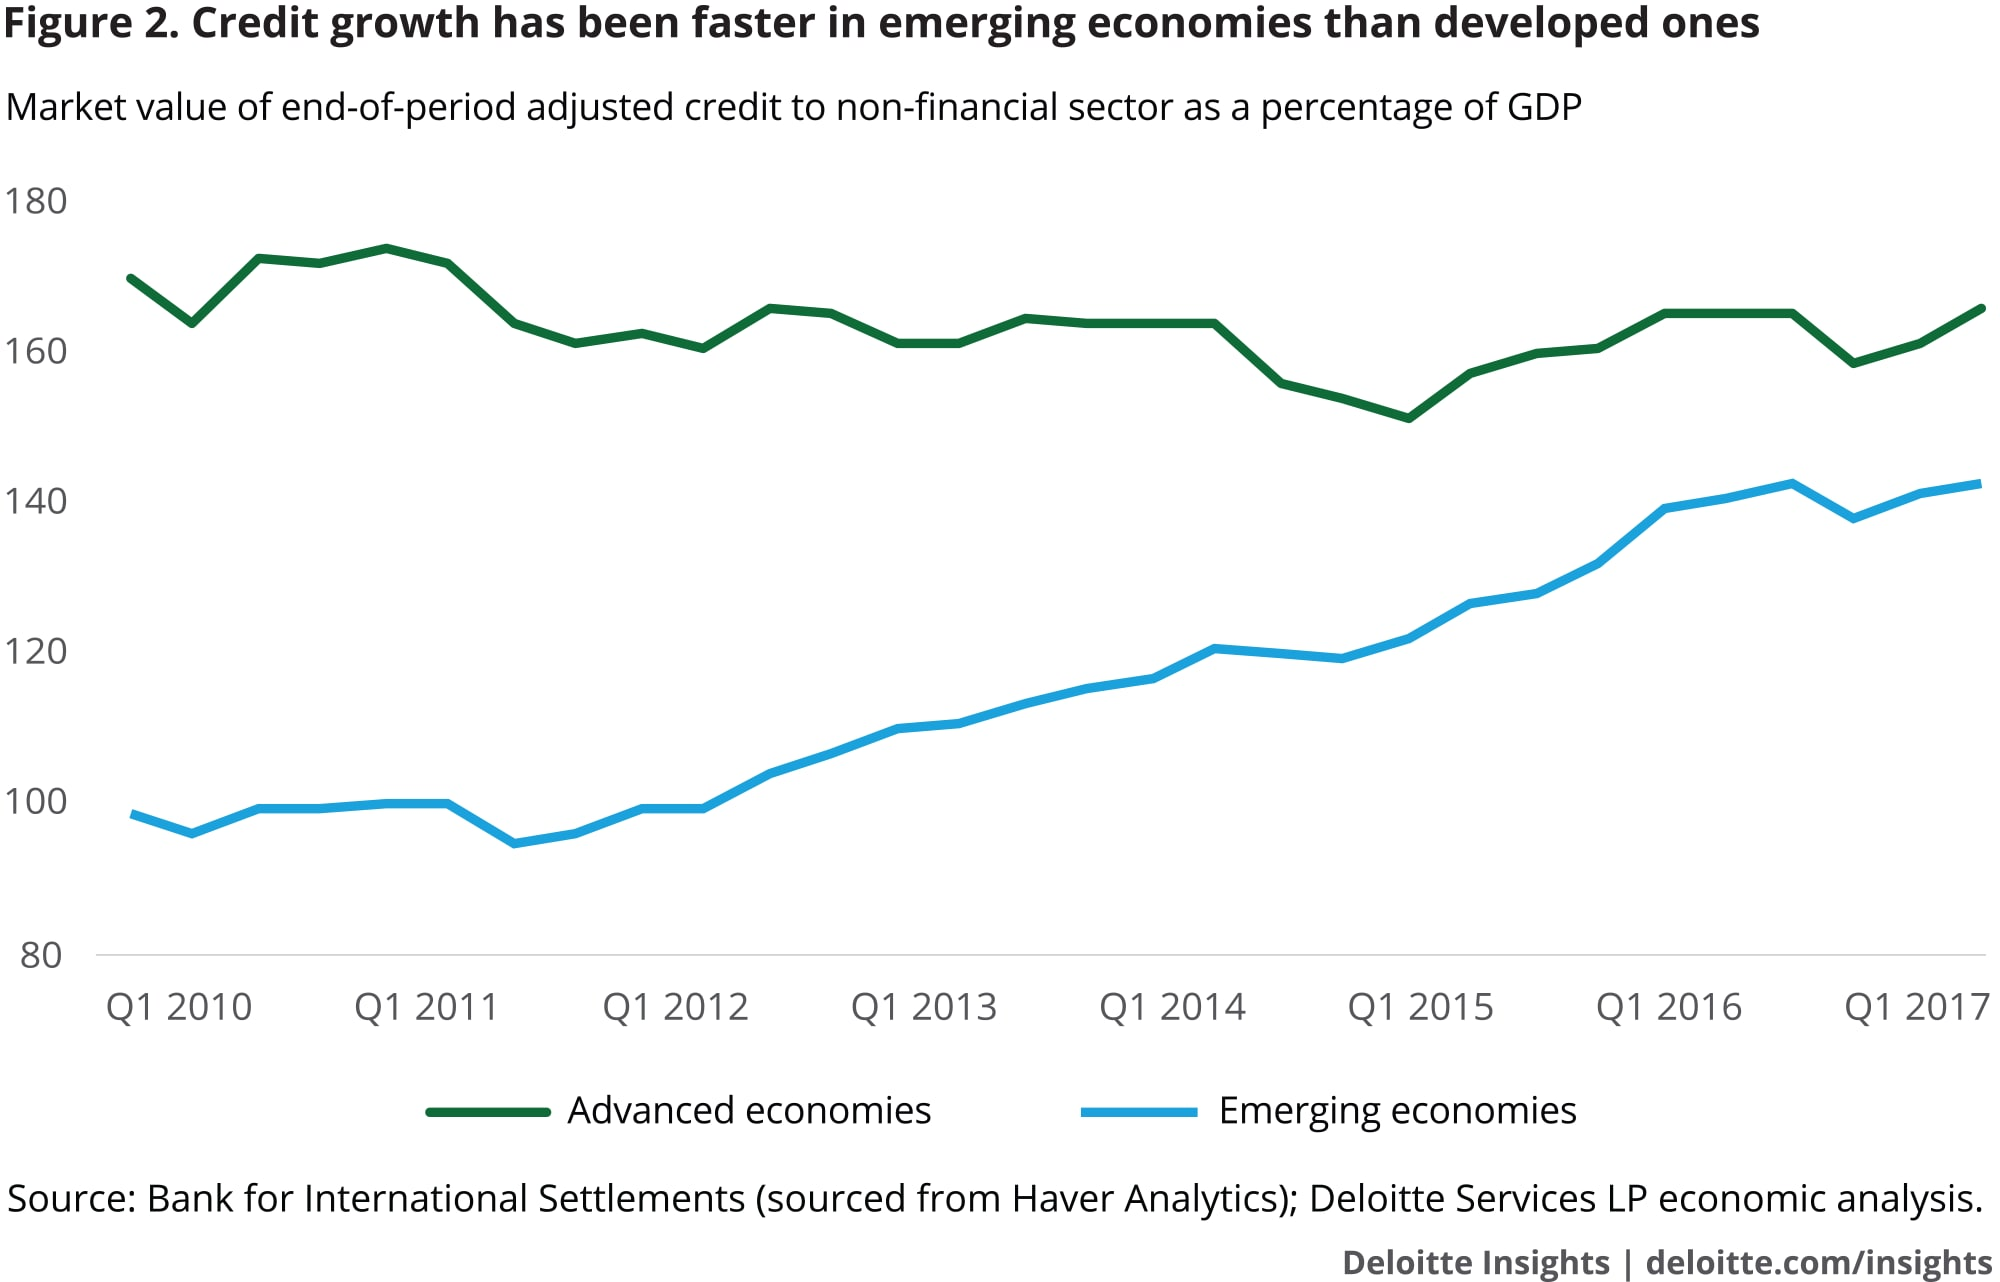 Credit growth has been faster in emerging economies than developed ones